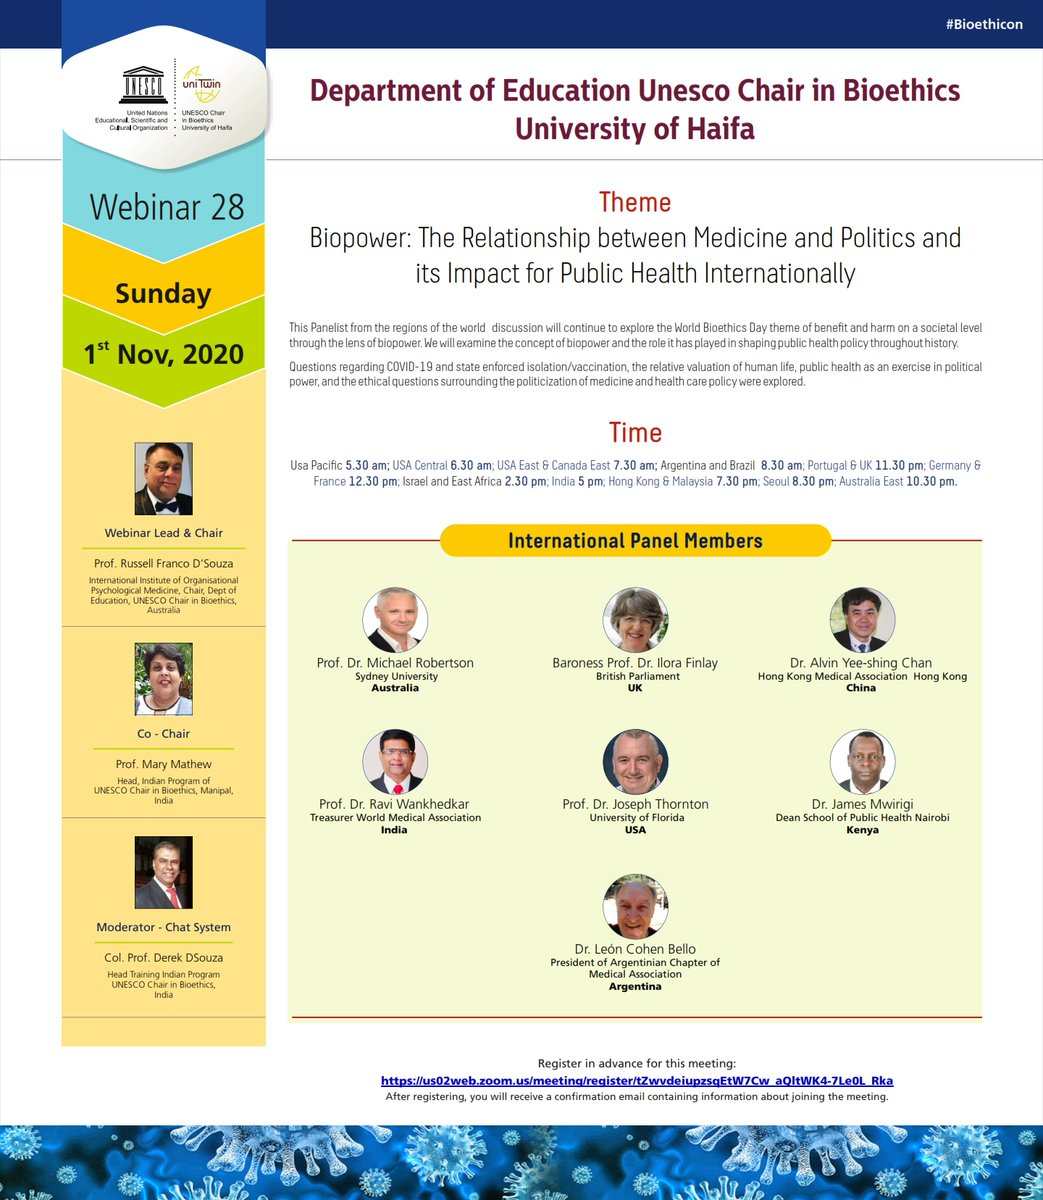 Welcome! You are invited to join a meeting: UNESCO CHAIR 28th WEBINAR  After registering, you will receive a confirmation email about joining the meeting. https://t.co/zi0nQzc5Pp  #UNESCO #bioethics #policies #medicines #publichealth #COVID19 #lockdown #Qurantine #Webinar https://t.co/6Ux8PLkcPp